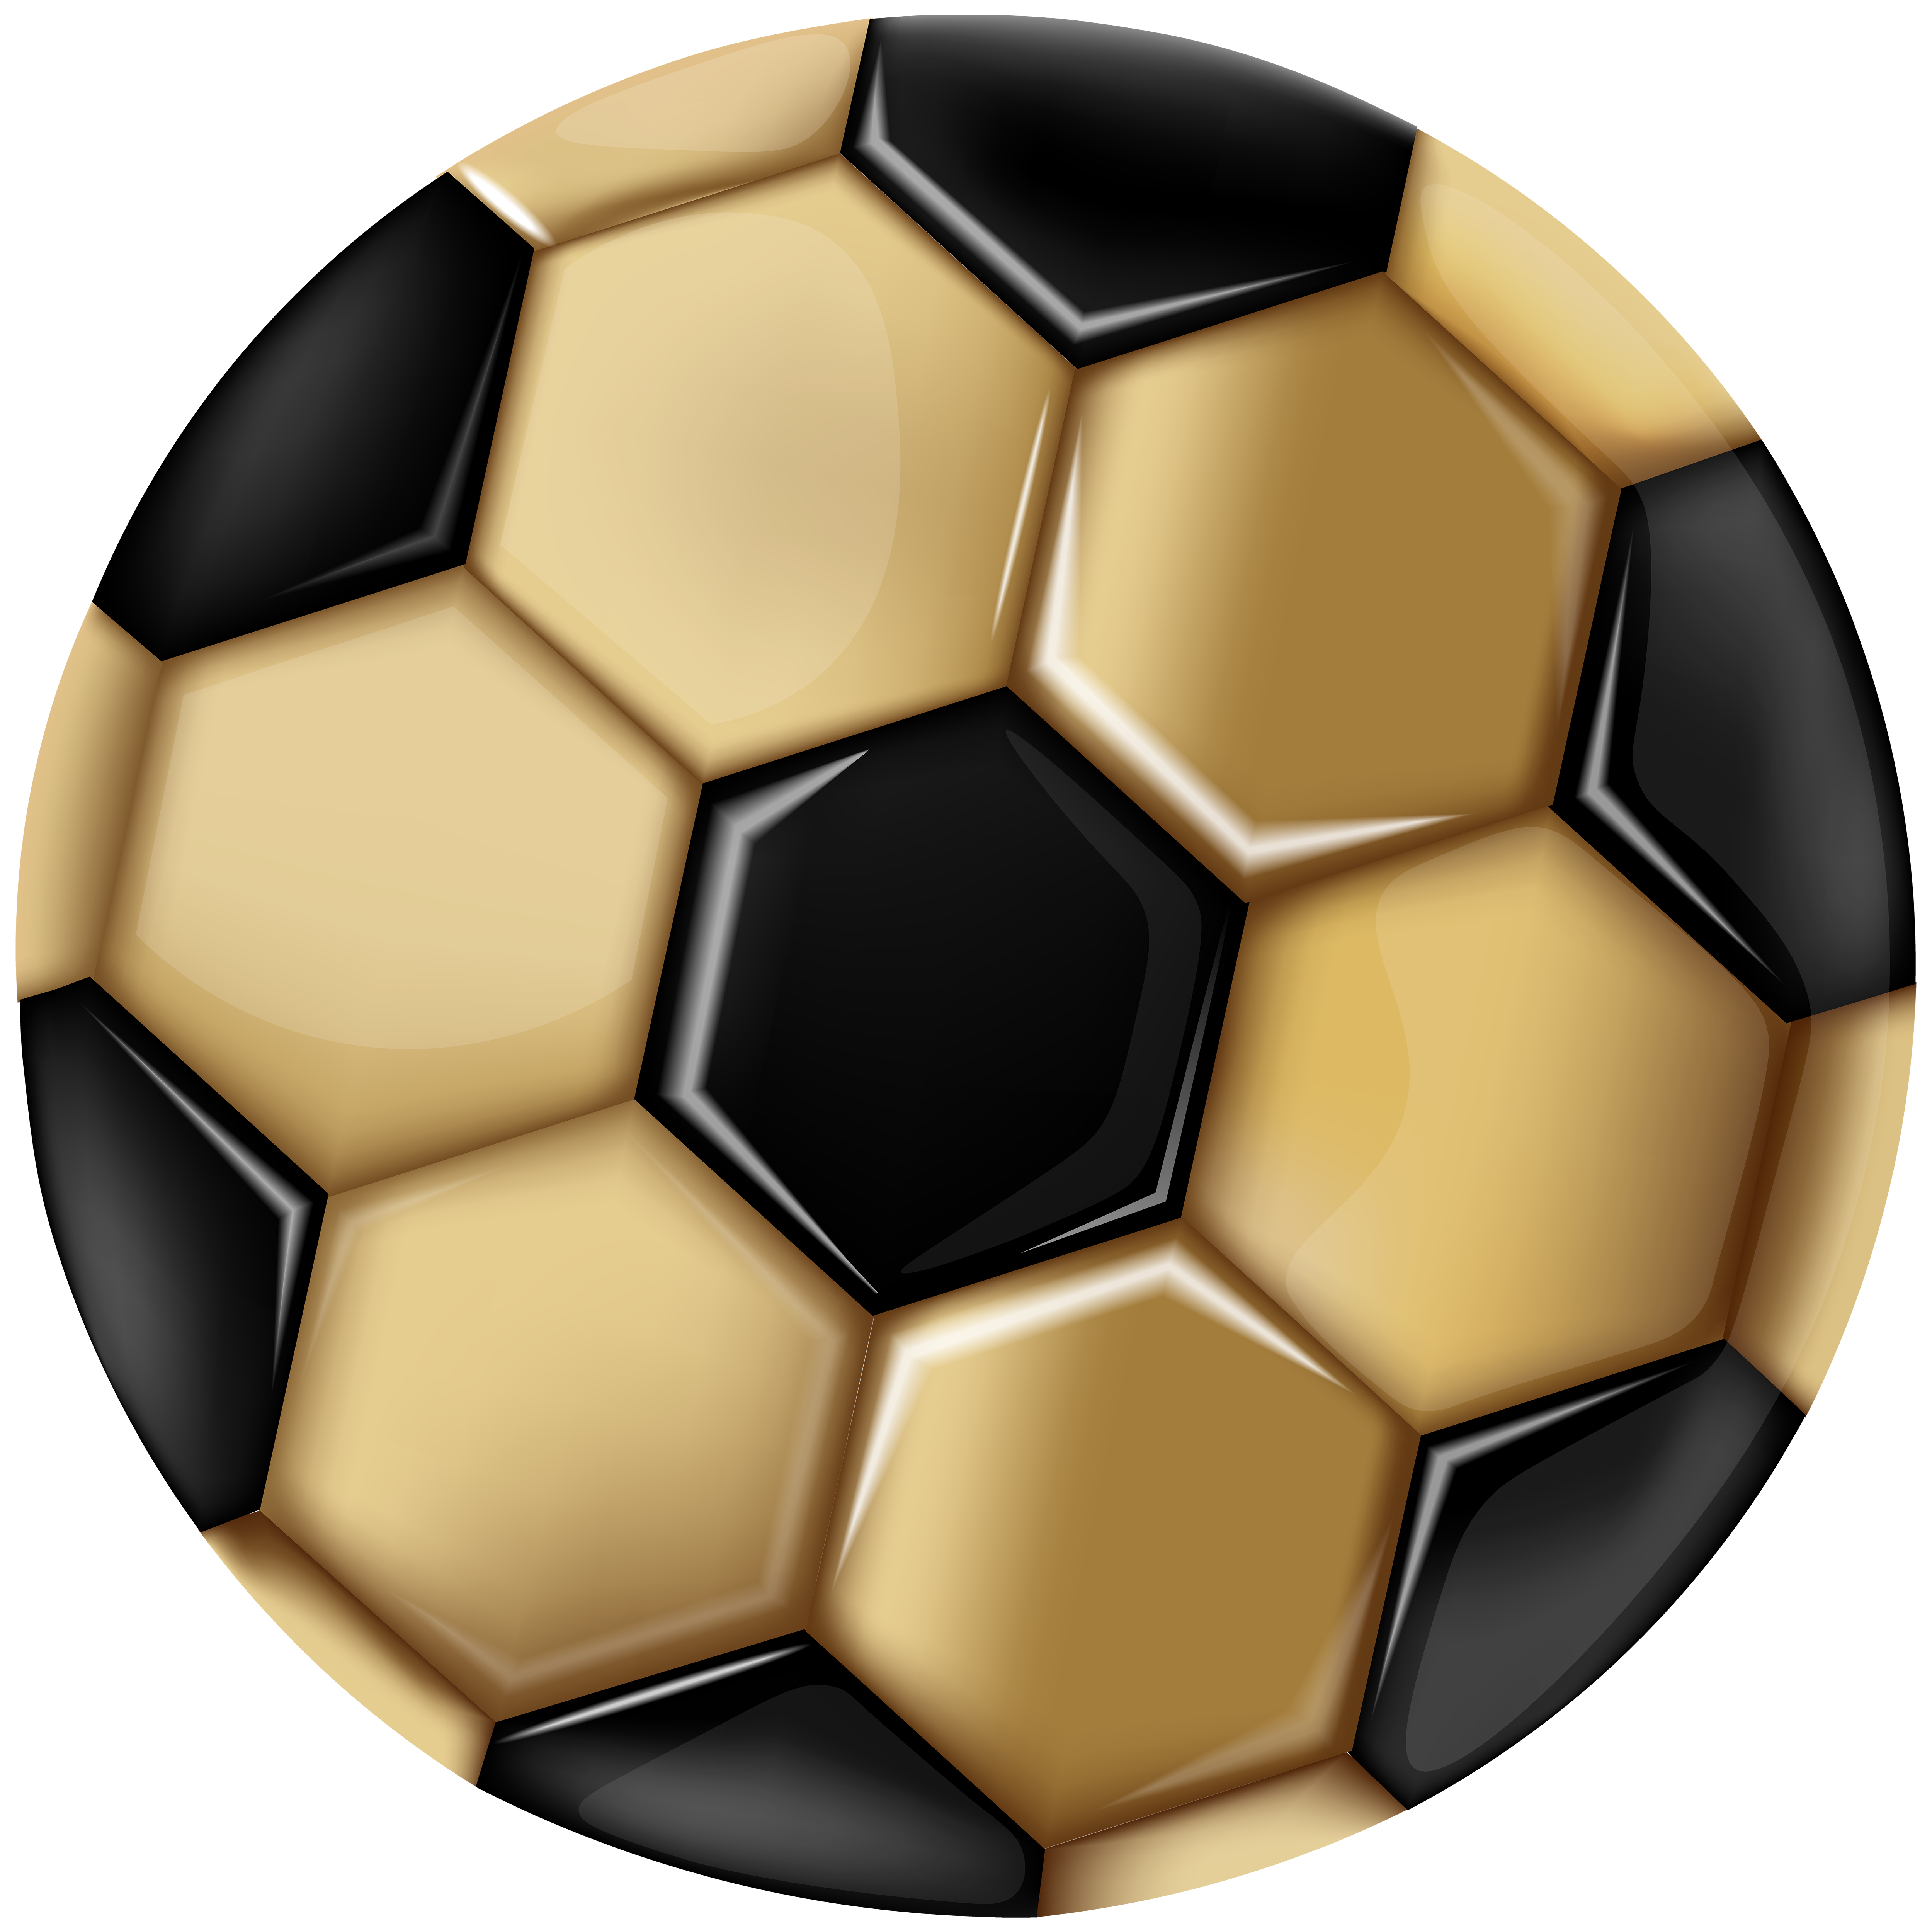 Soccer Ball Gold Transparent Image Gallery Yopriceville High Quality Images And Transparent Png Free Clipart Soccer Ball Soccer Ball